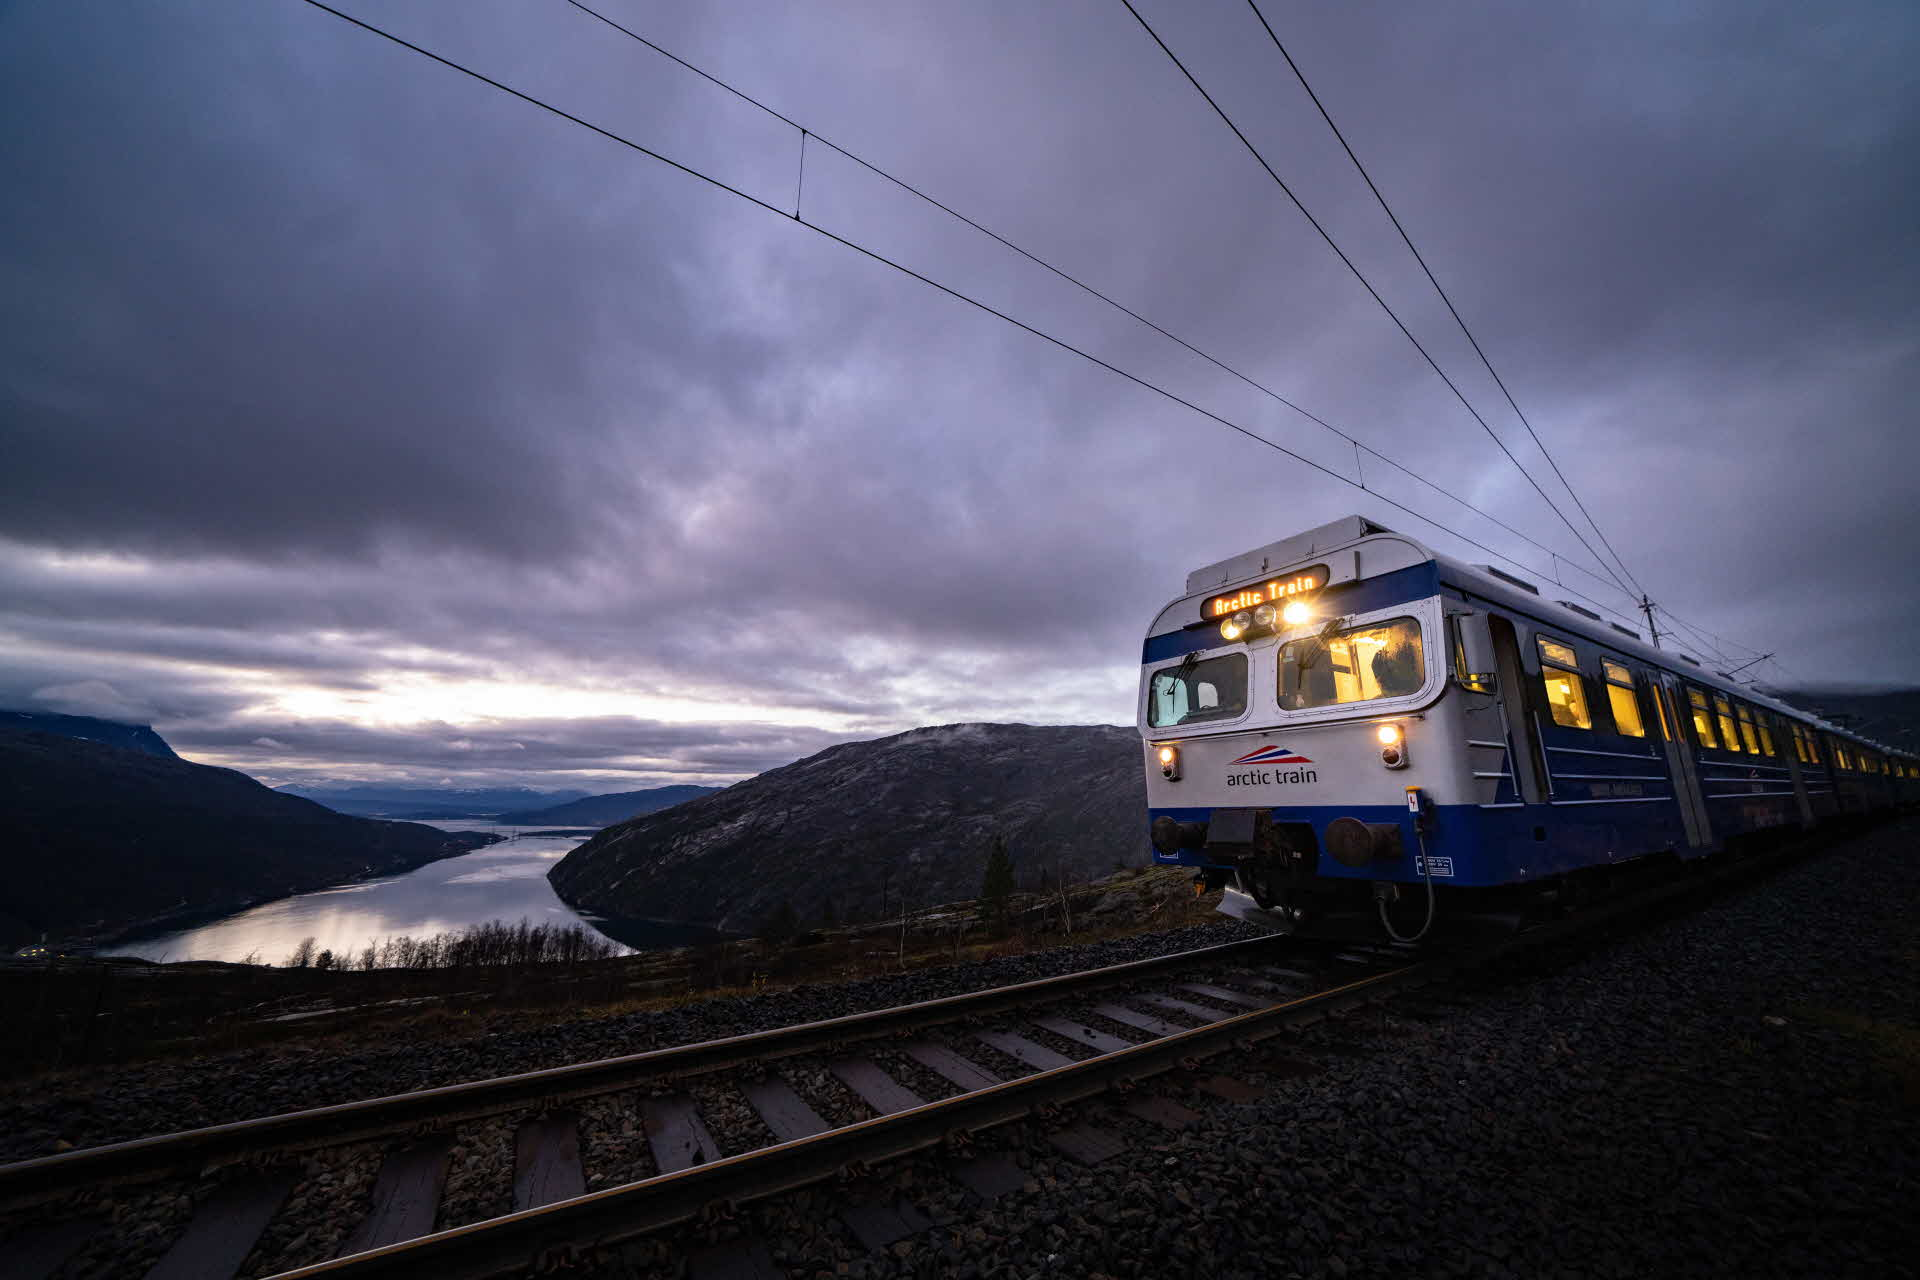 Lights from The Arctric Train on the Ofot railway illuminate when stop at top of mountain late evening by  Rombakfjord